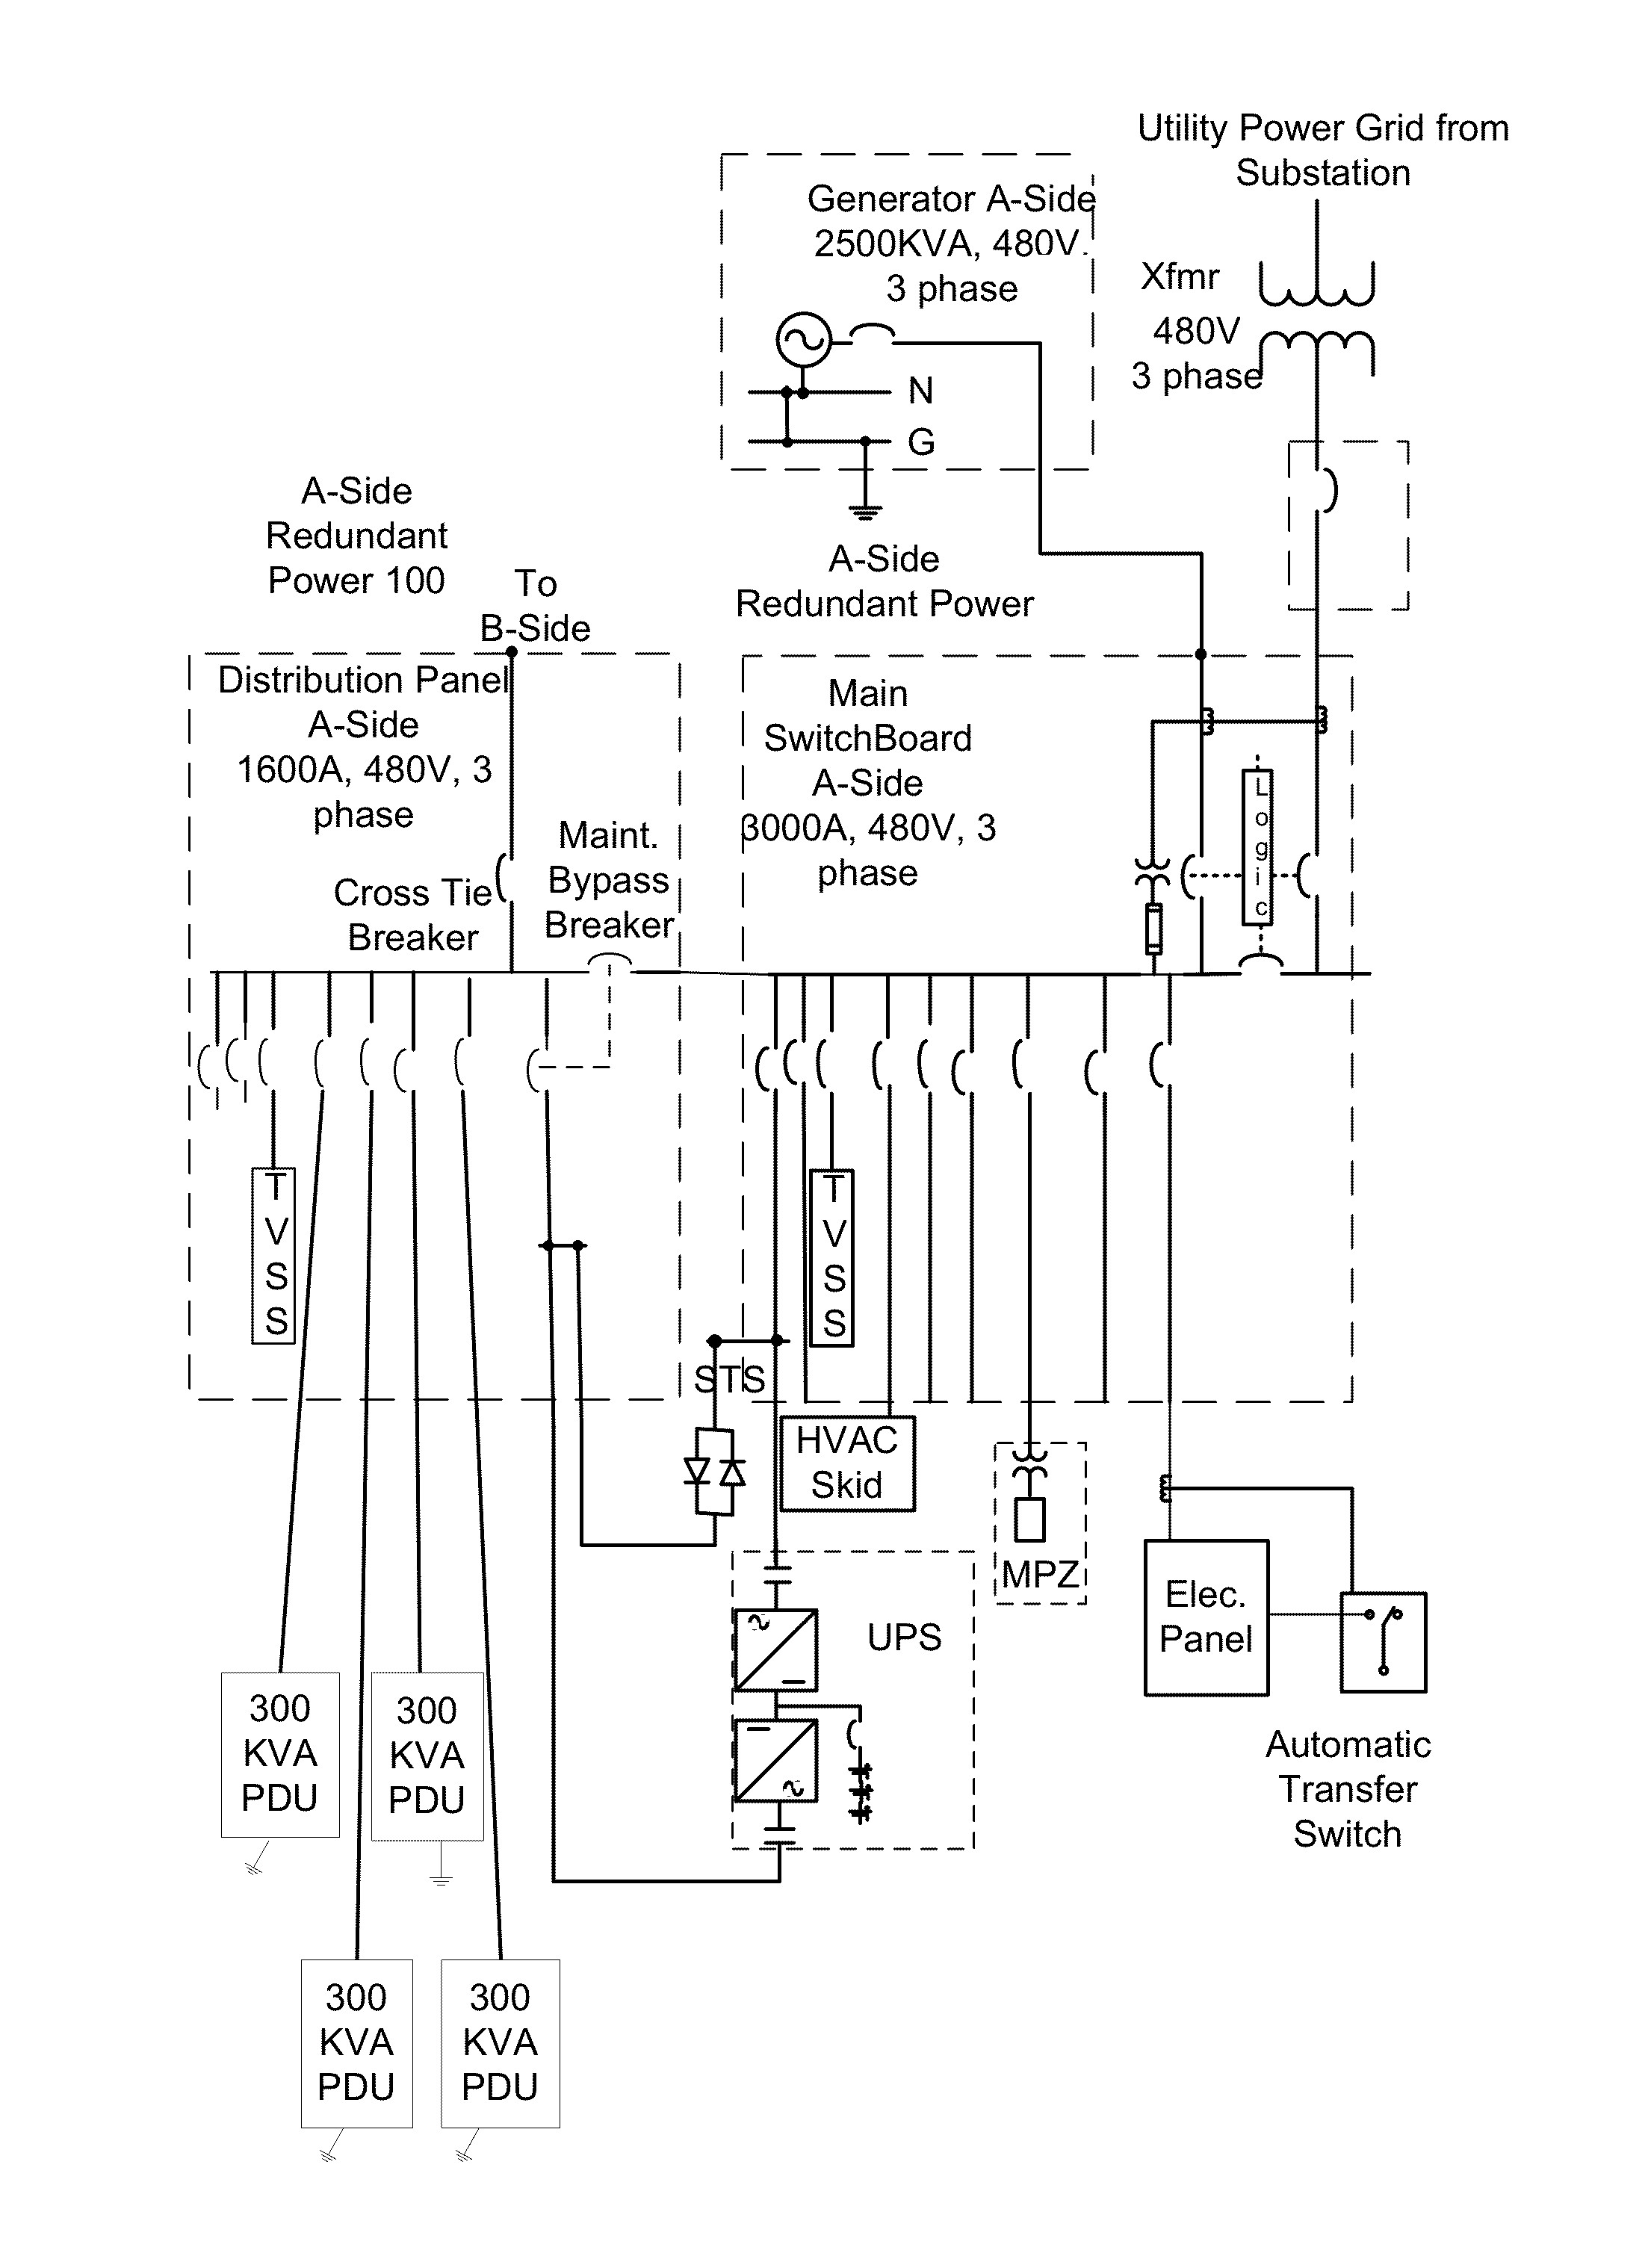 2002 Grand Am Engine Wiring Diagram Library Saturn Sl1 Pontiac Bonneville 1999 Fuse Diagrams Of